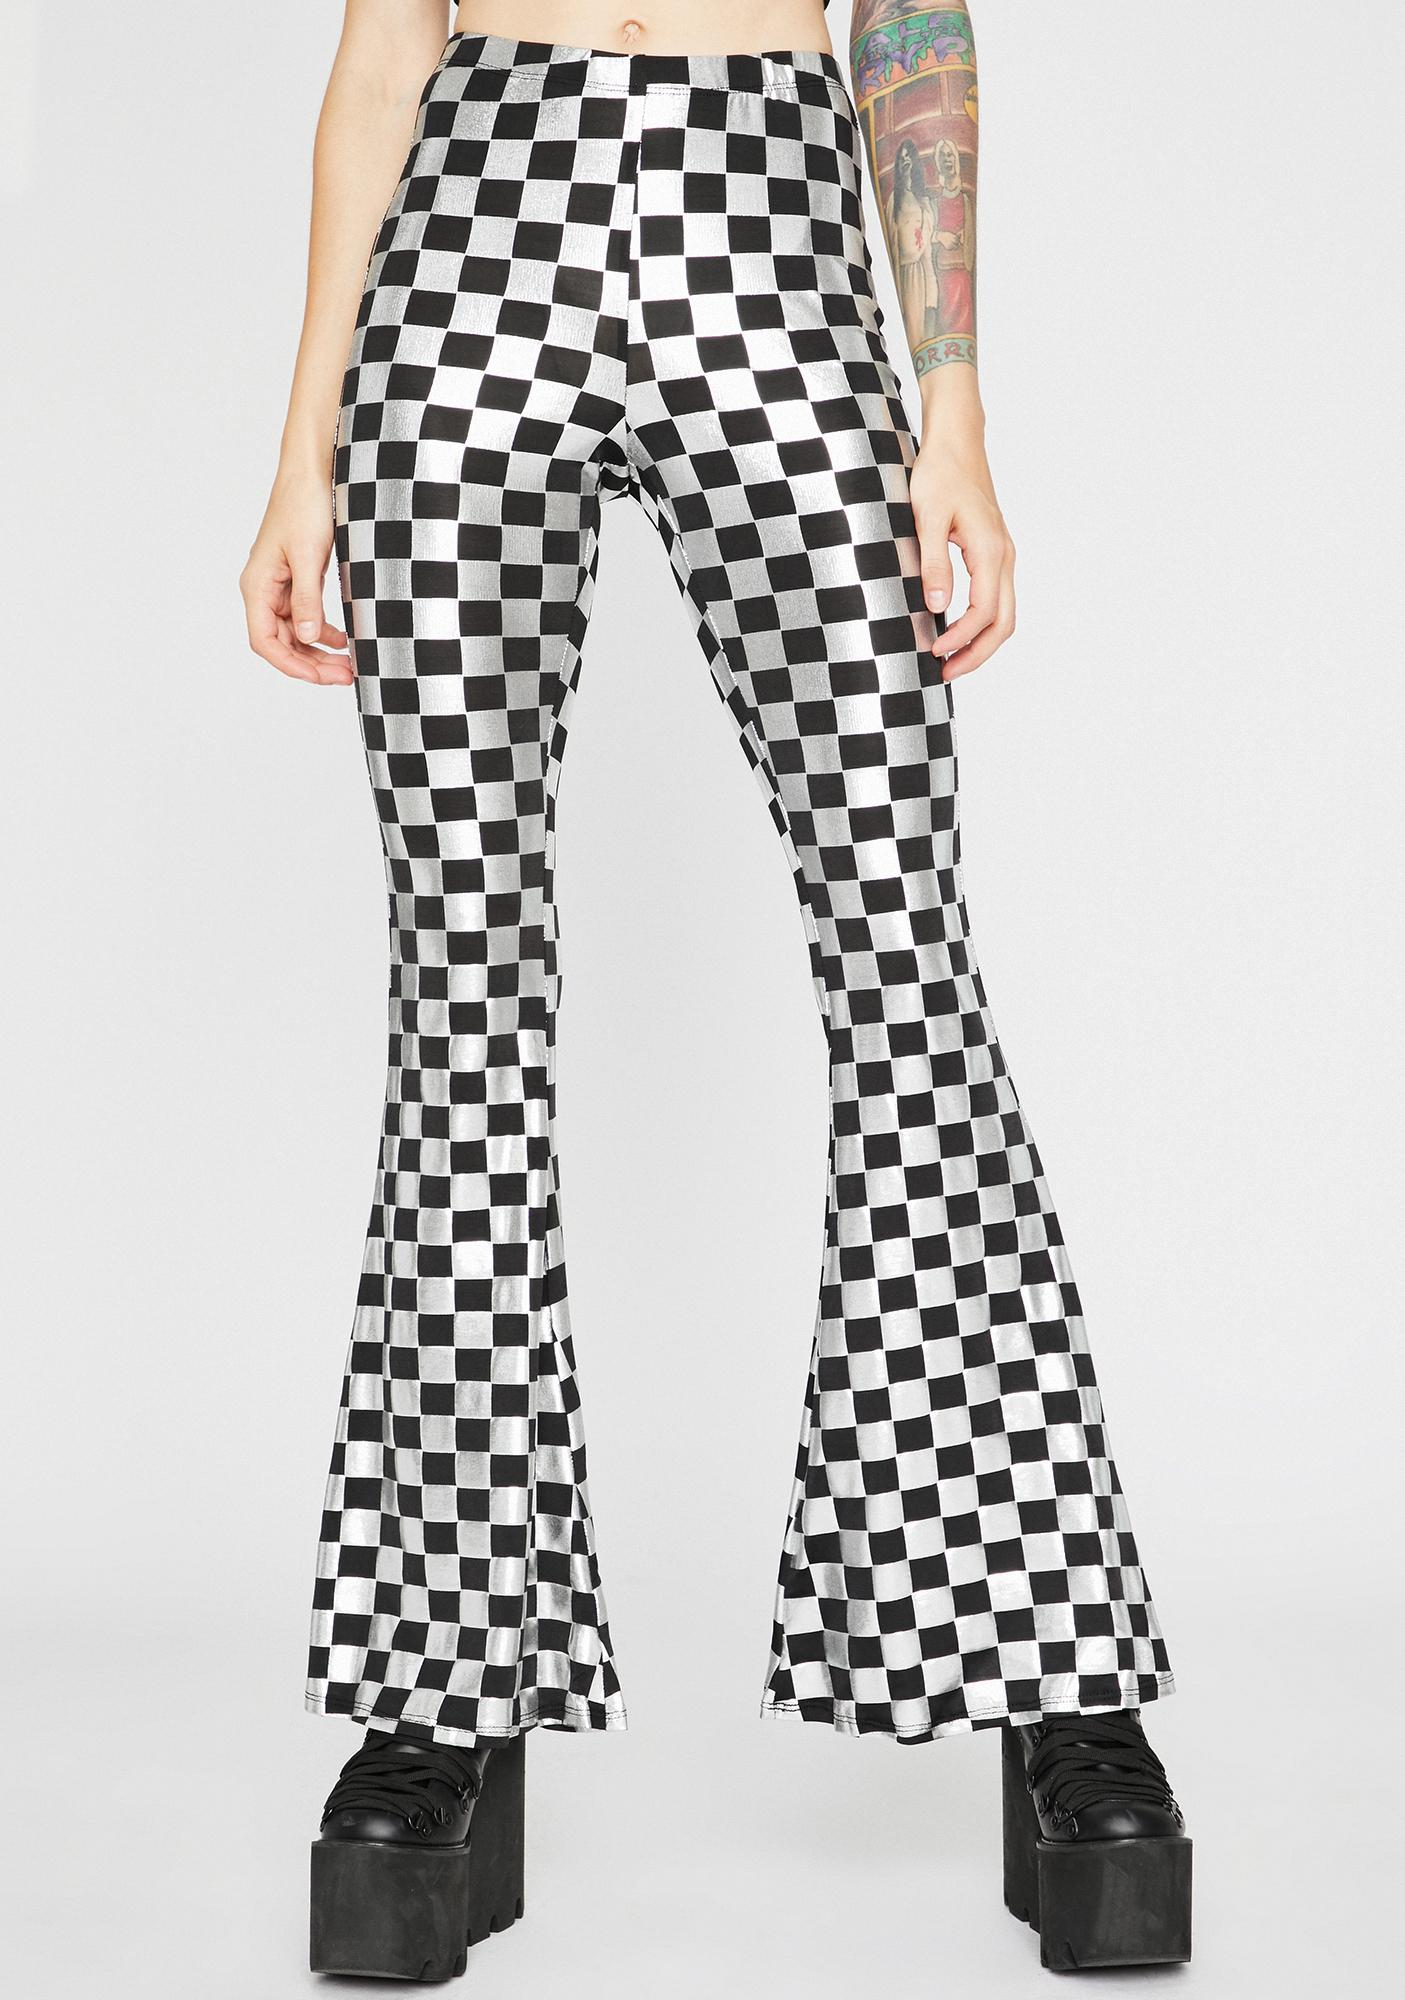 Moonstone Hippie Disco Flare Pants